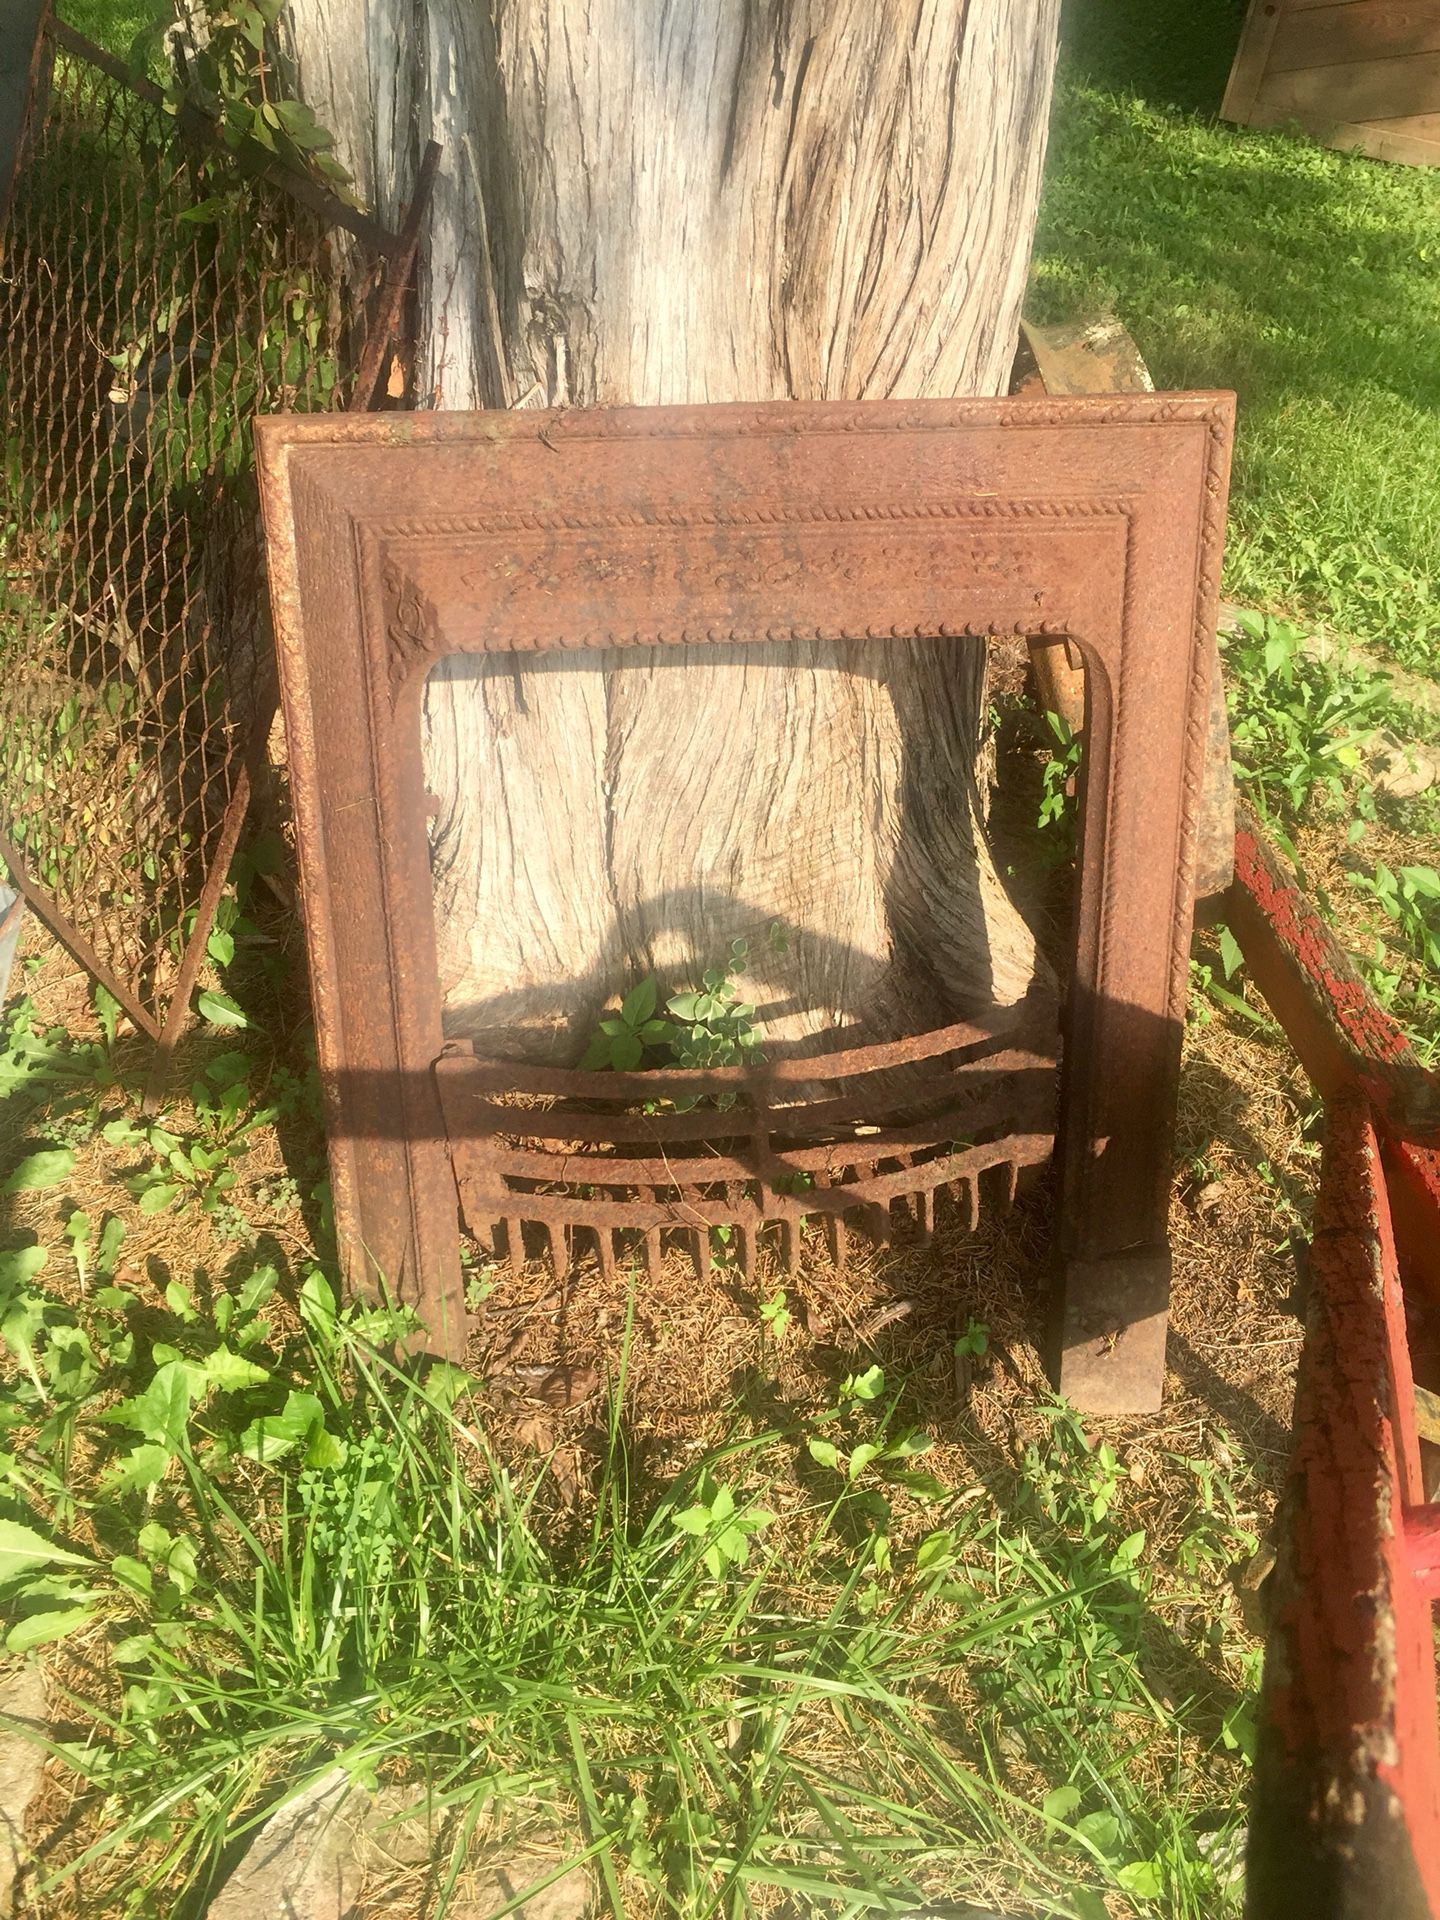 Very Old Vintage Fireplace Grate and Insert